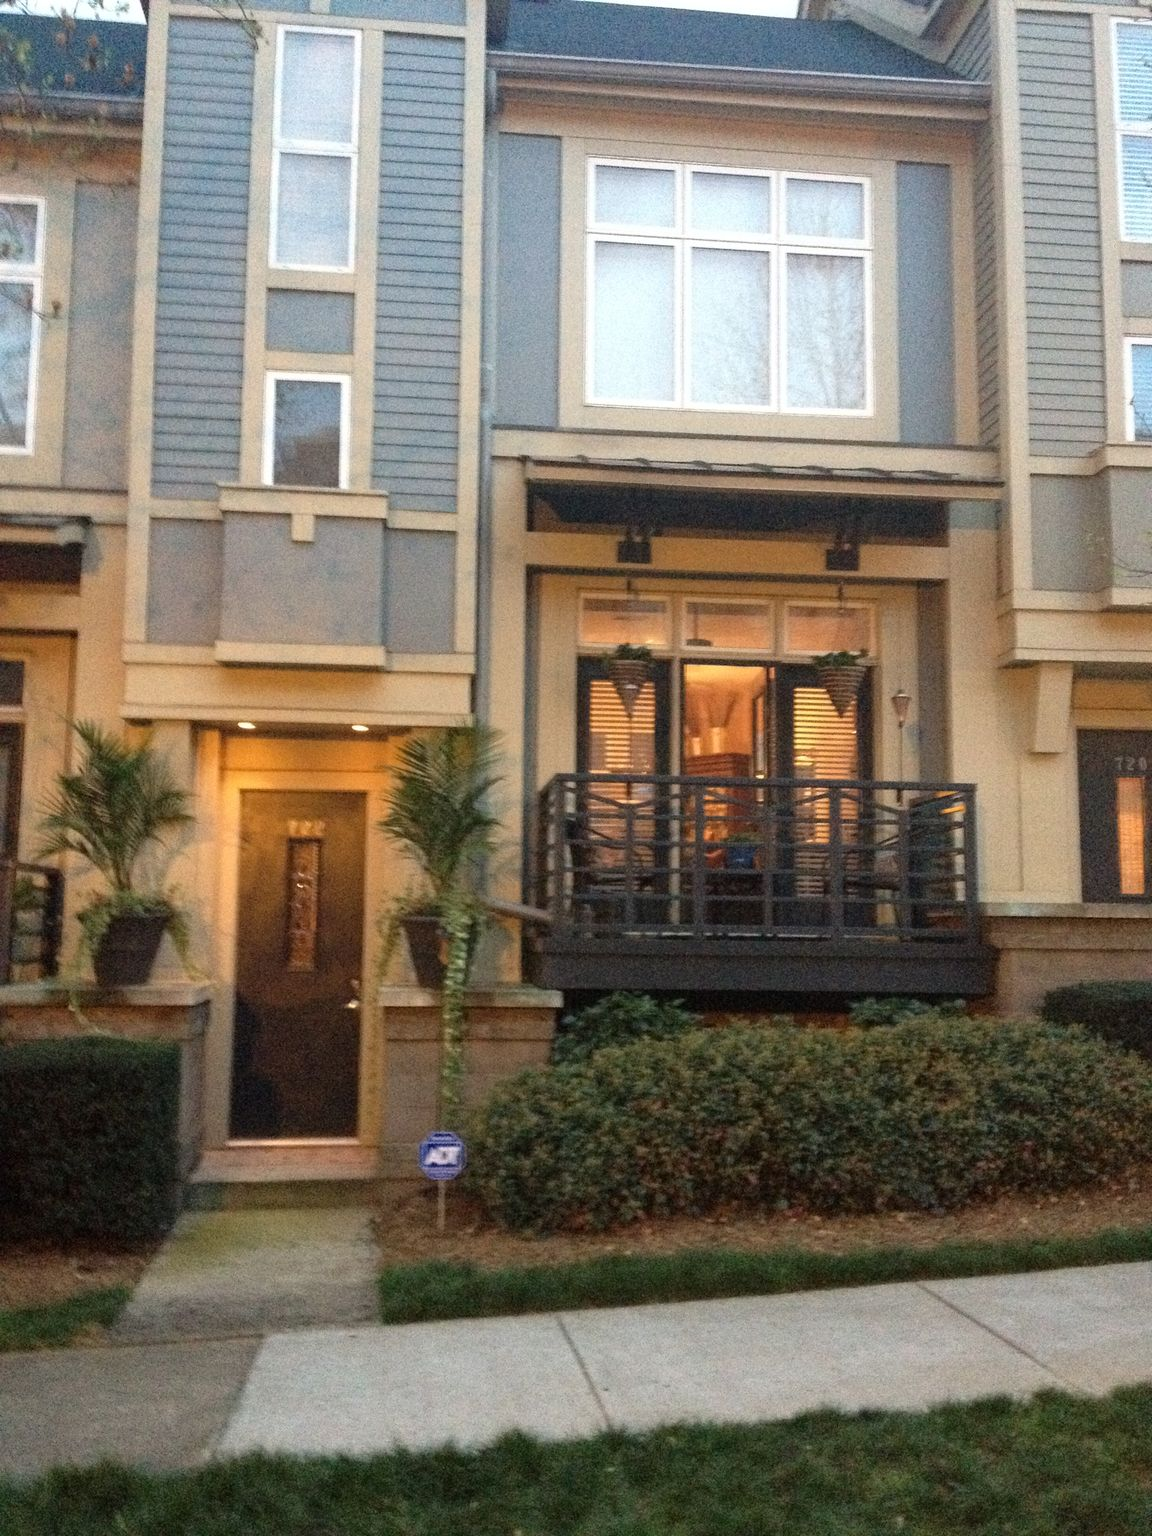 722 Garden District Dr, Charlotte, NC 28202 - Recently Sold | Trulia